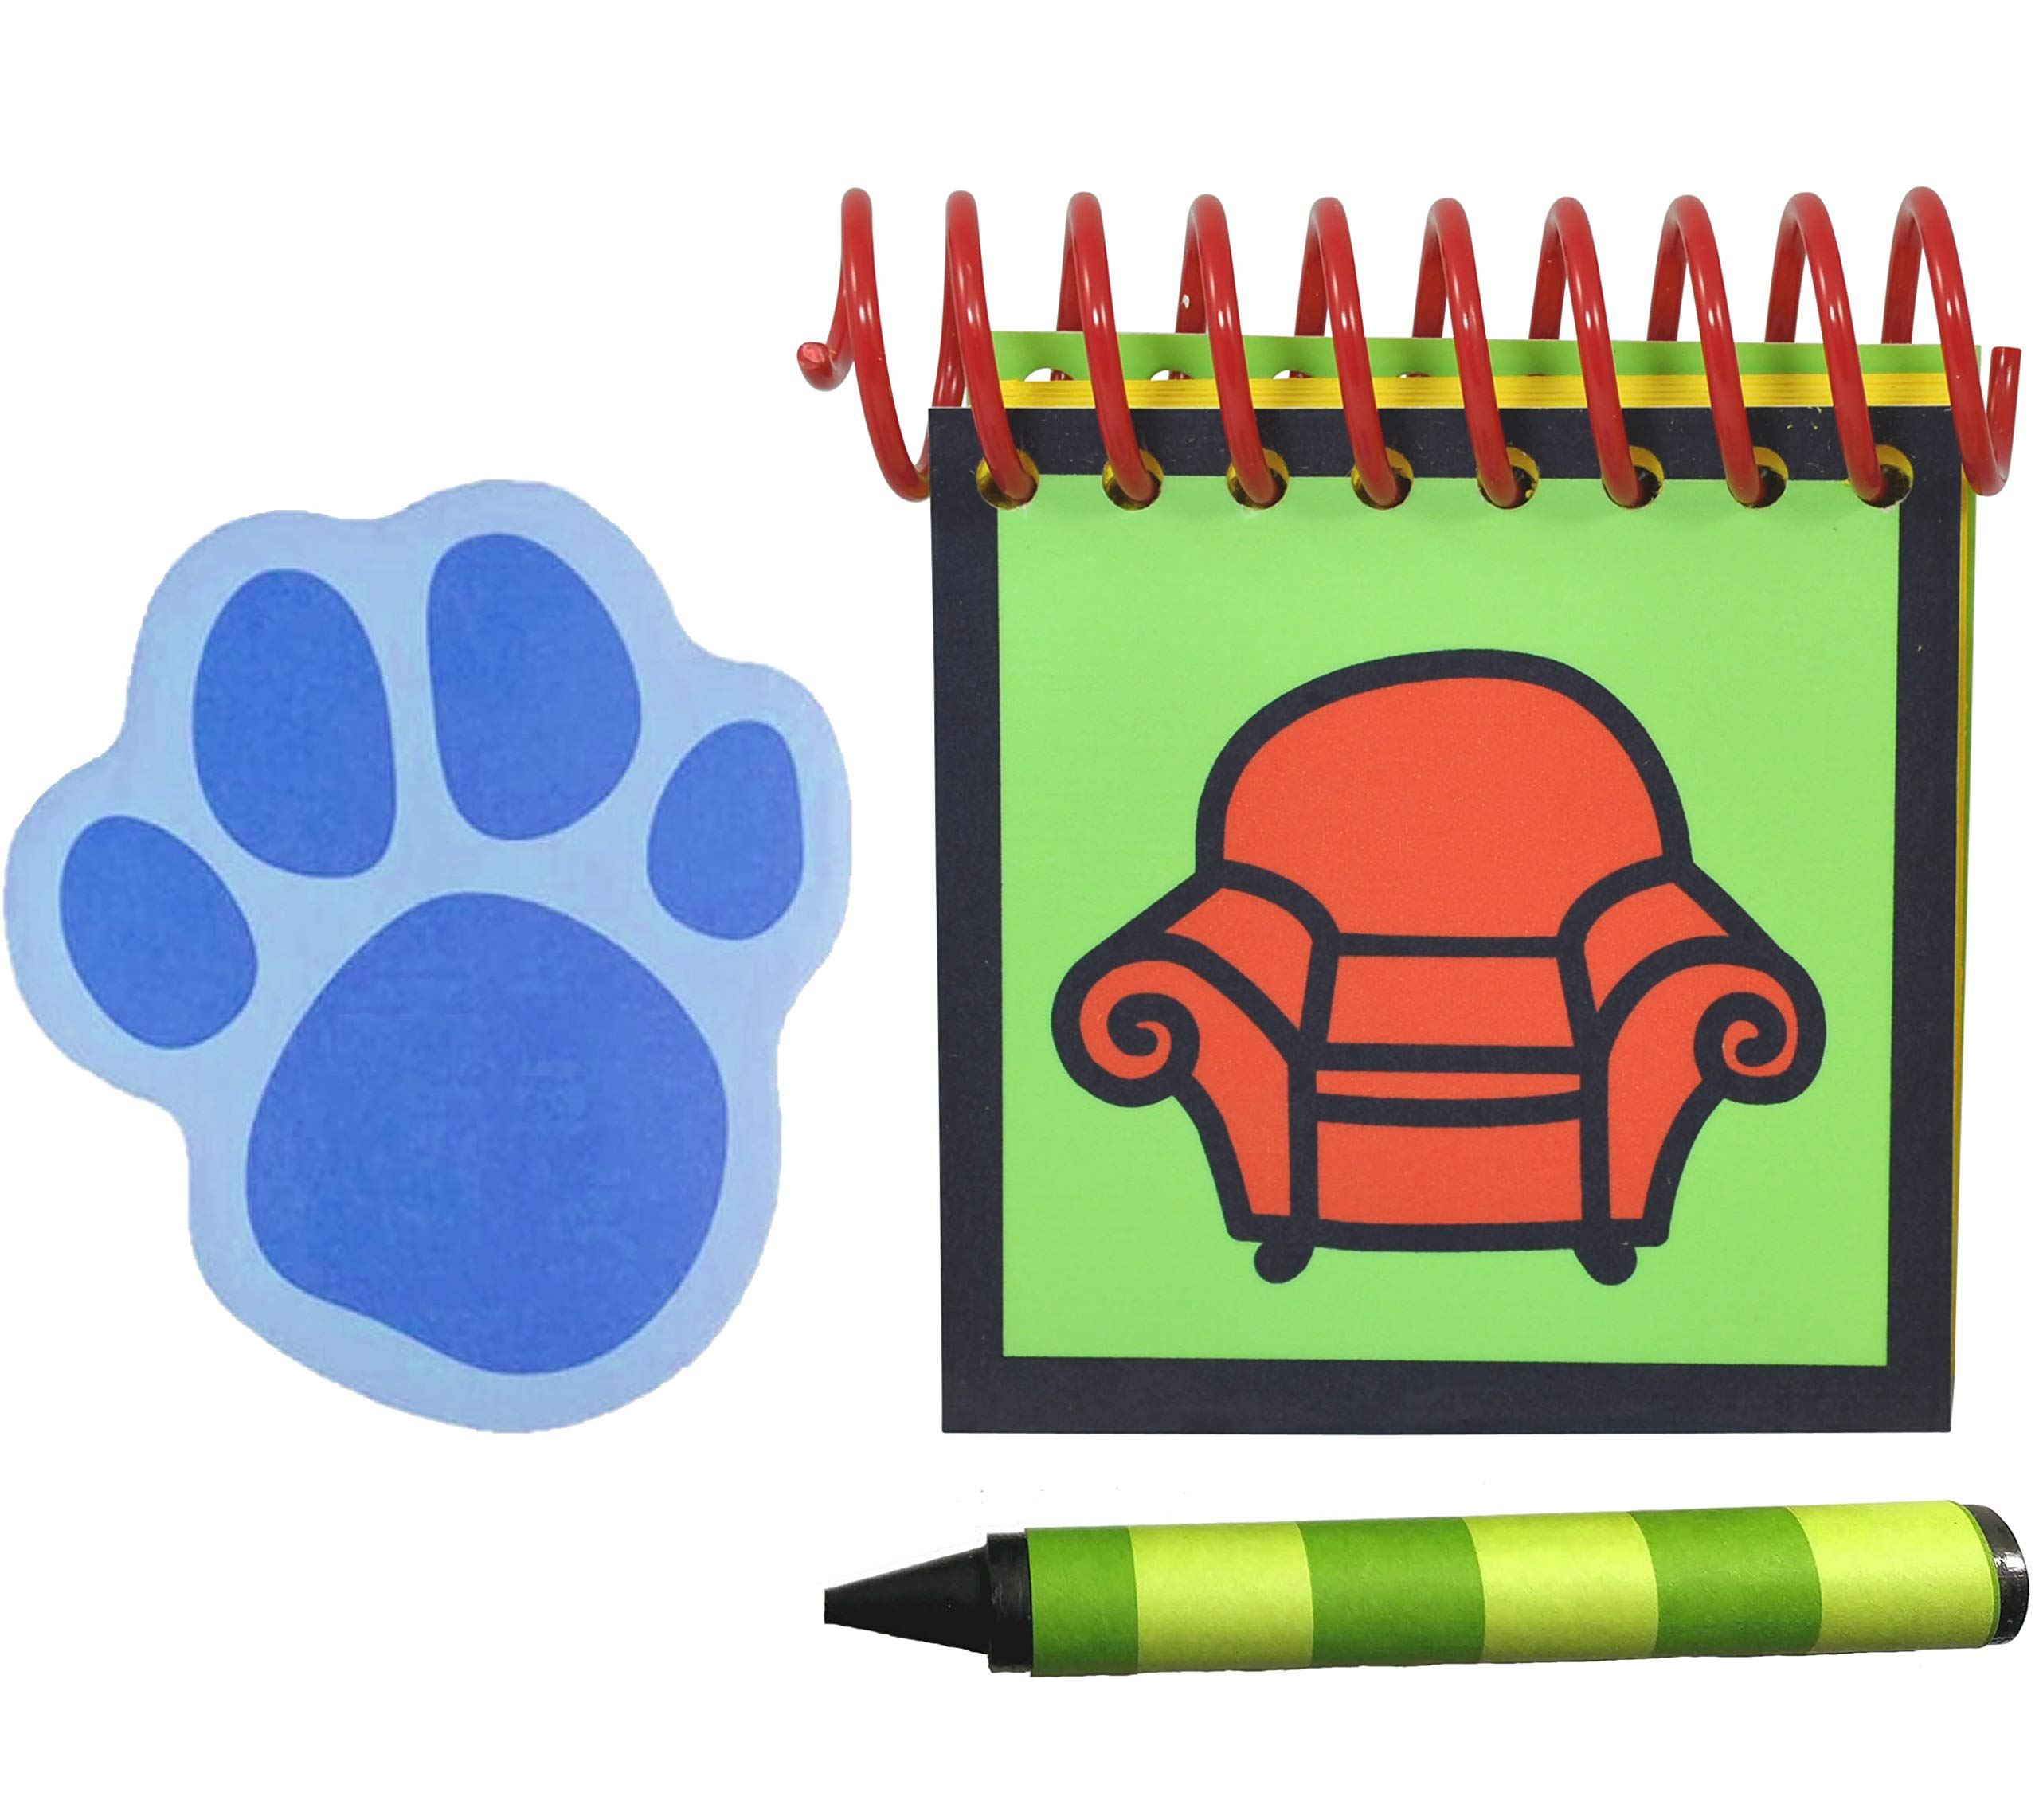 Handcrafted Handy Dandy inspired Steve Notebook and Crayons